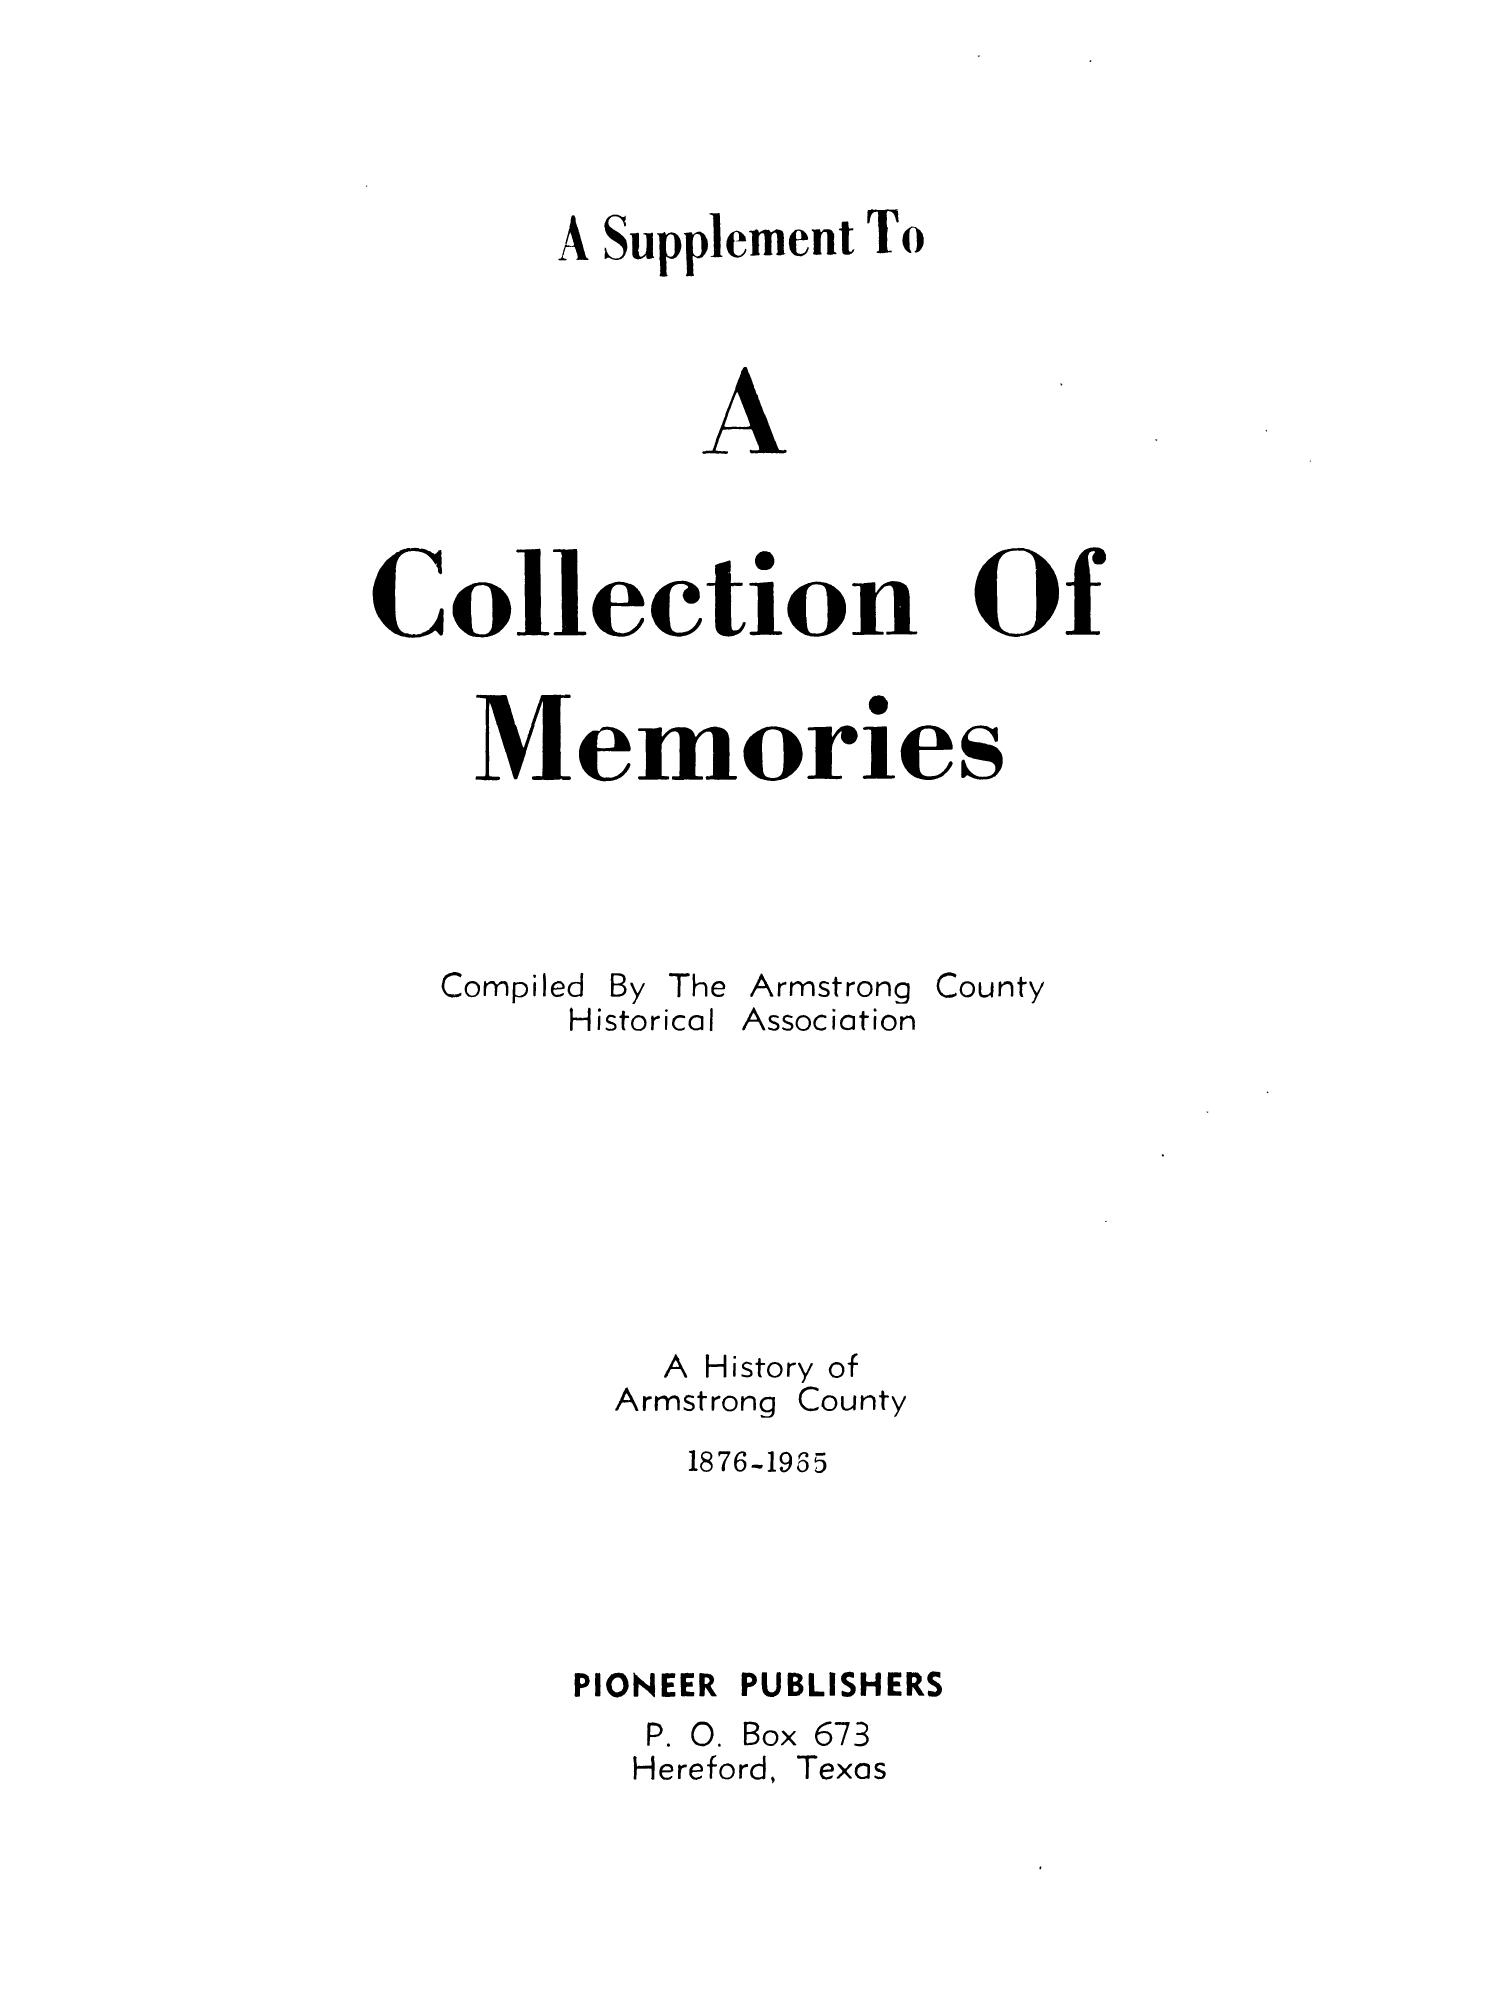 A Supplement To A Collection of Memories: A History of Armstrong County, 1876-1965                                                                                                      1